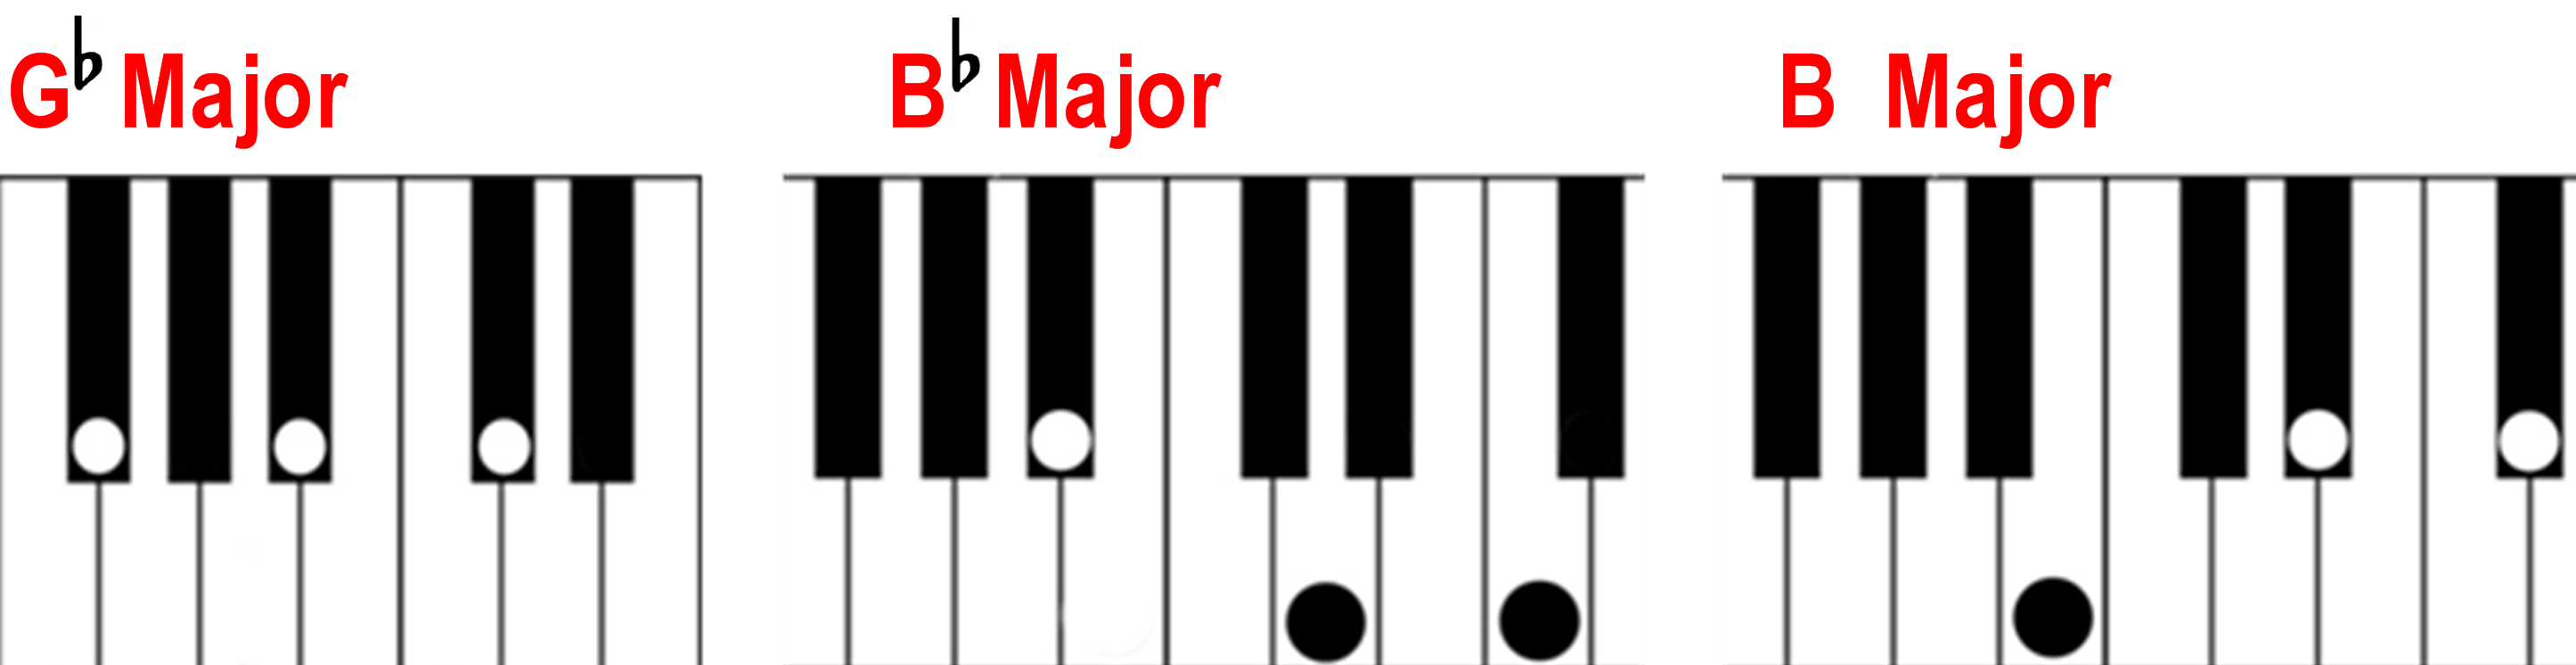 Finding A Major Chord On The Piano